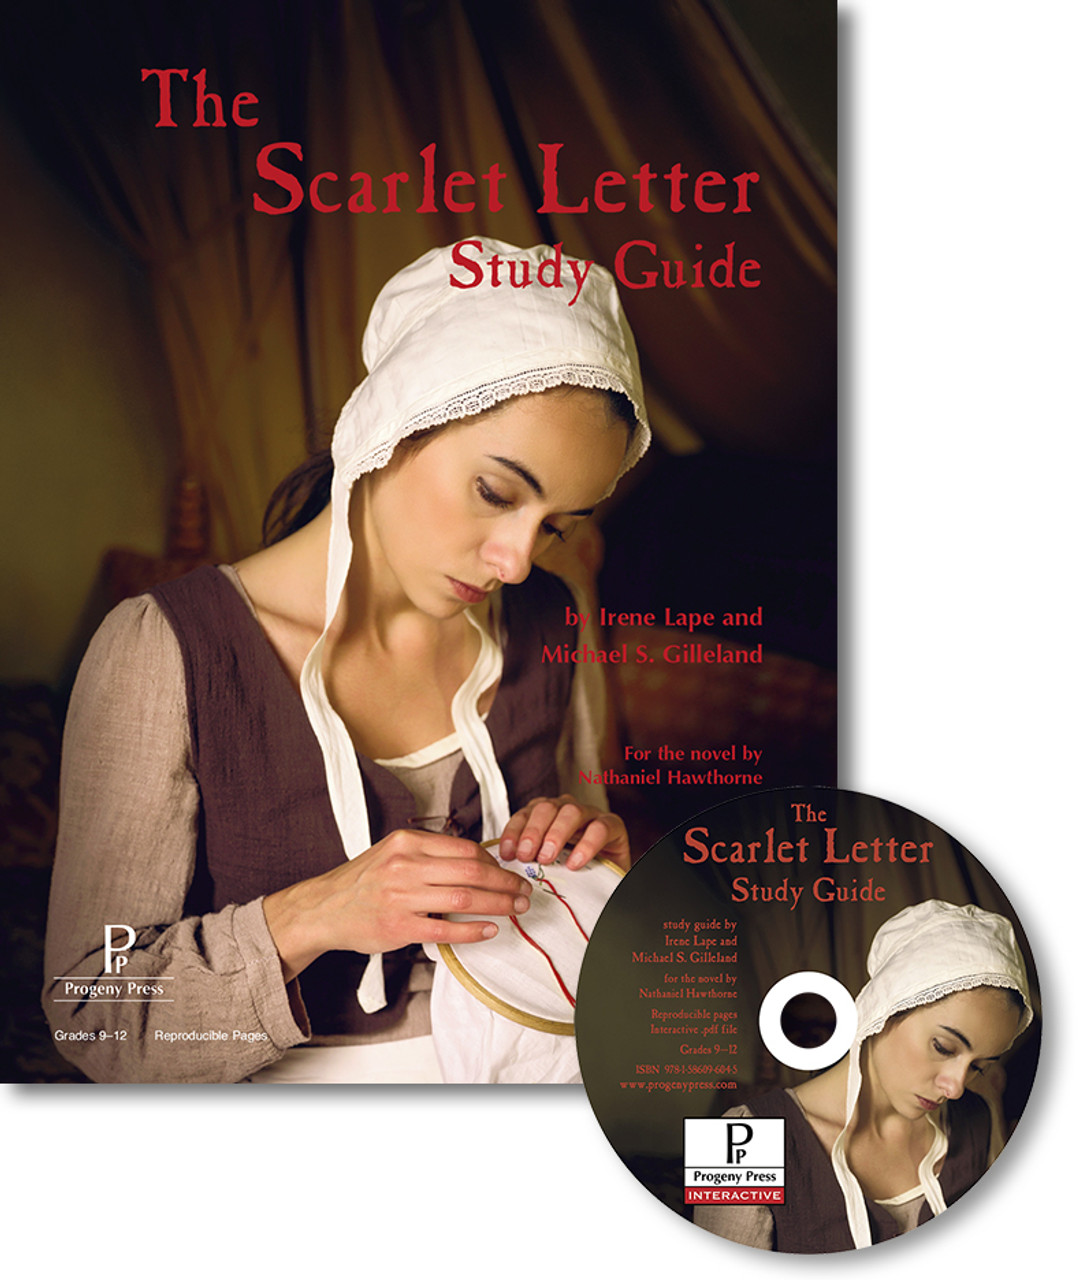 The Scarlet Letter Study Guide Progeny Press Literature Curriculum